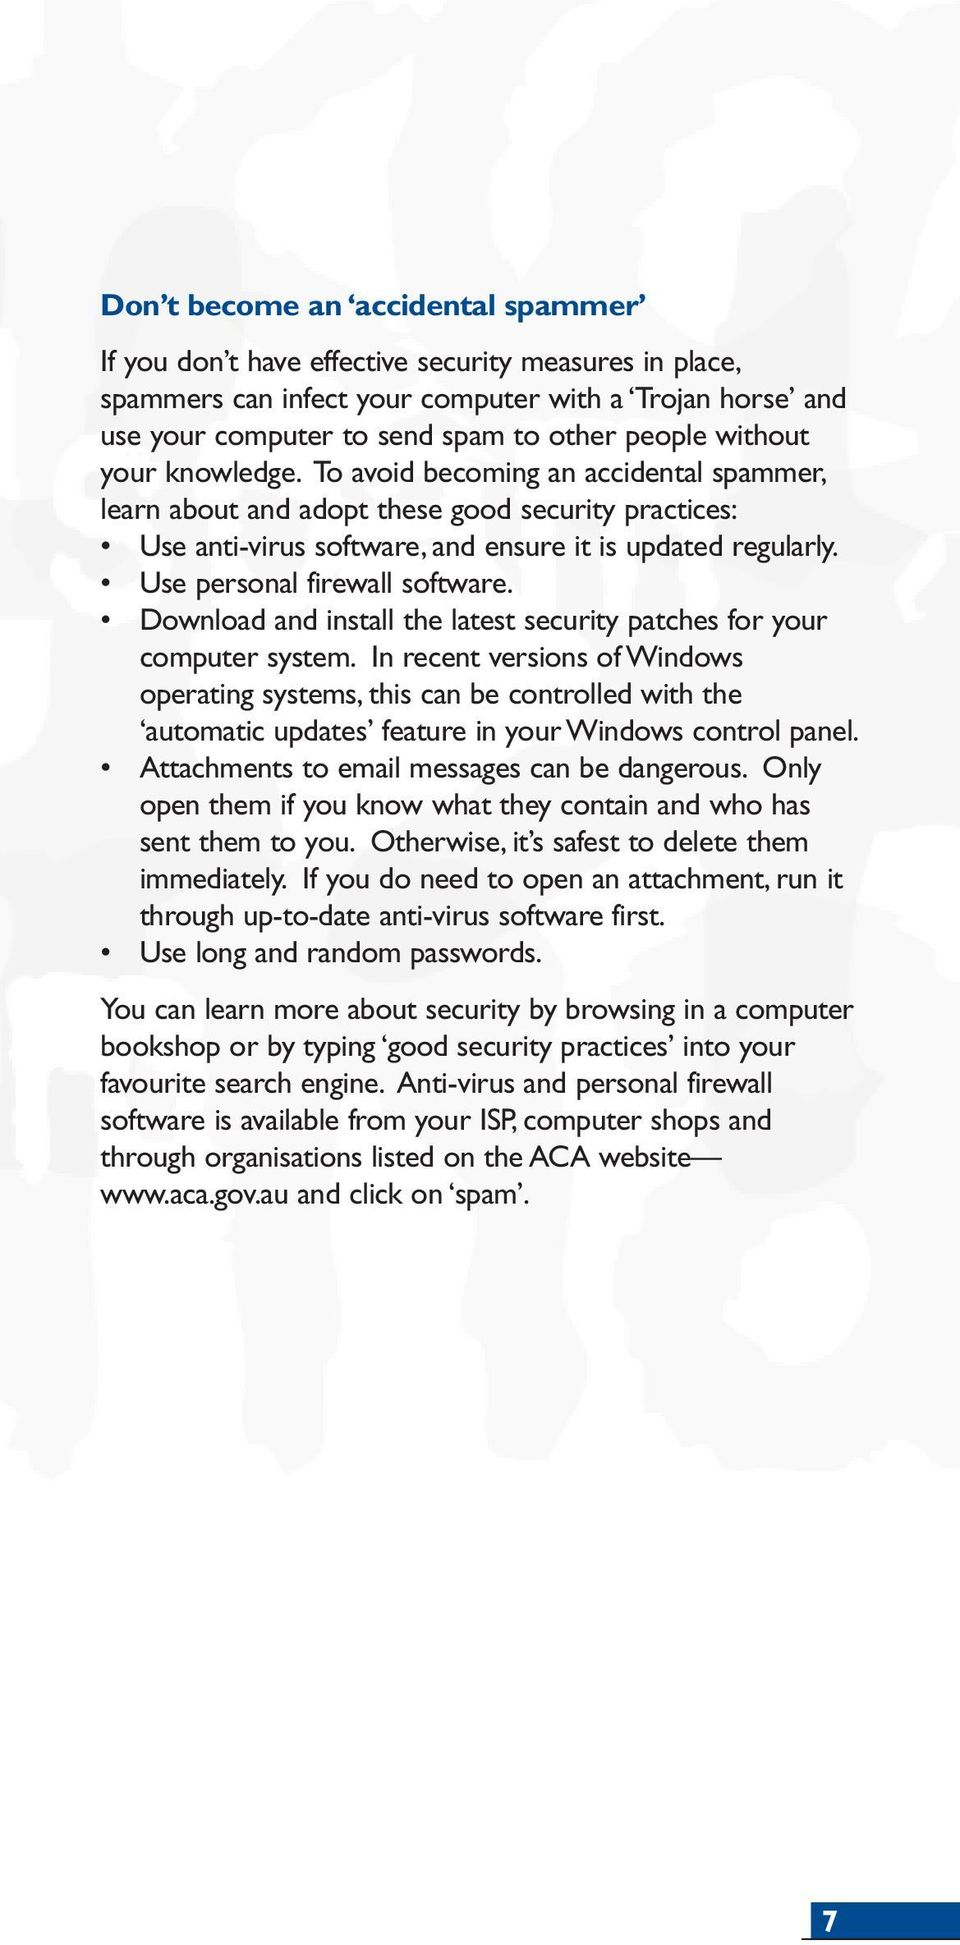 Use personal firewall software. Download and install the latest security patches for your computer system.